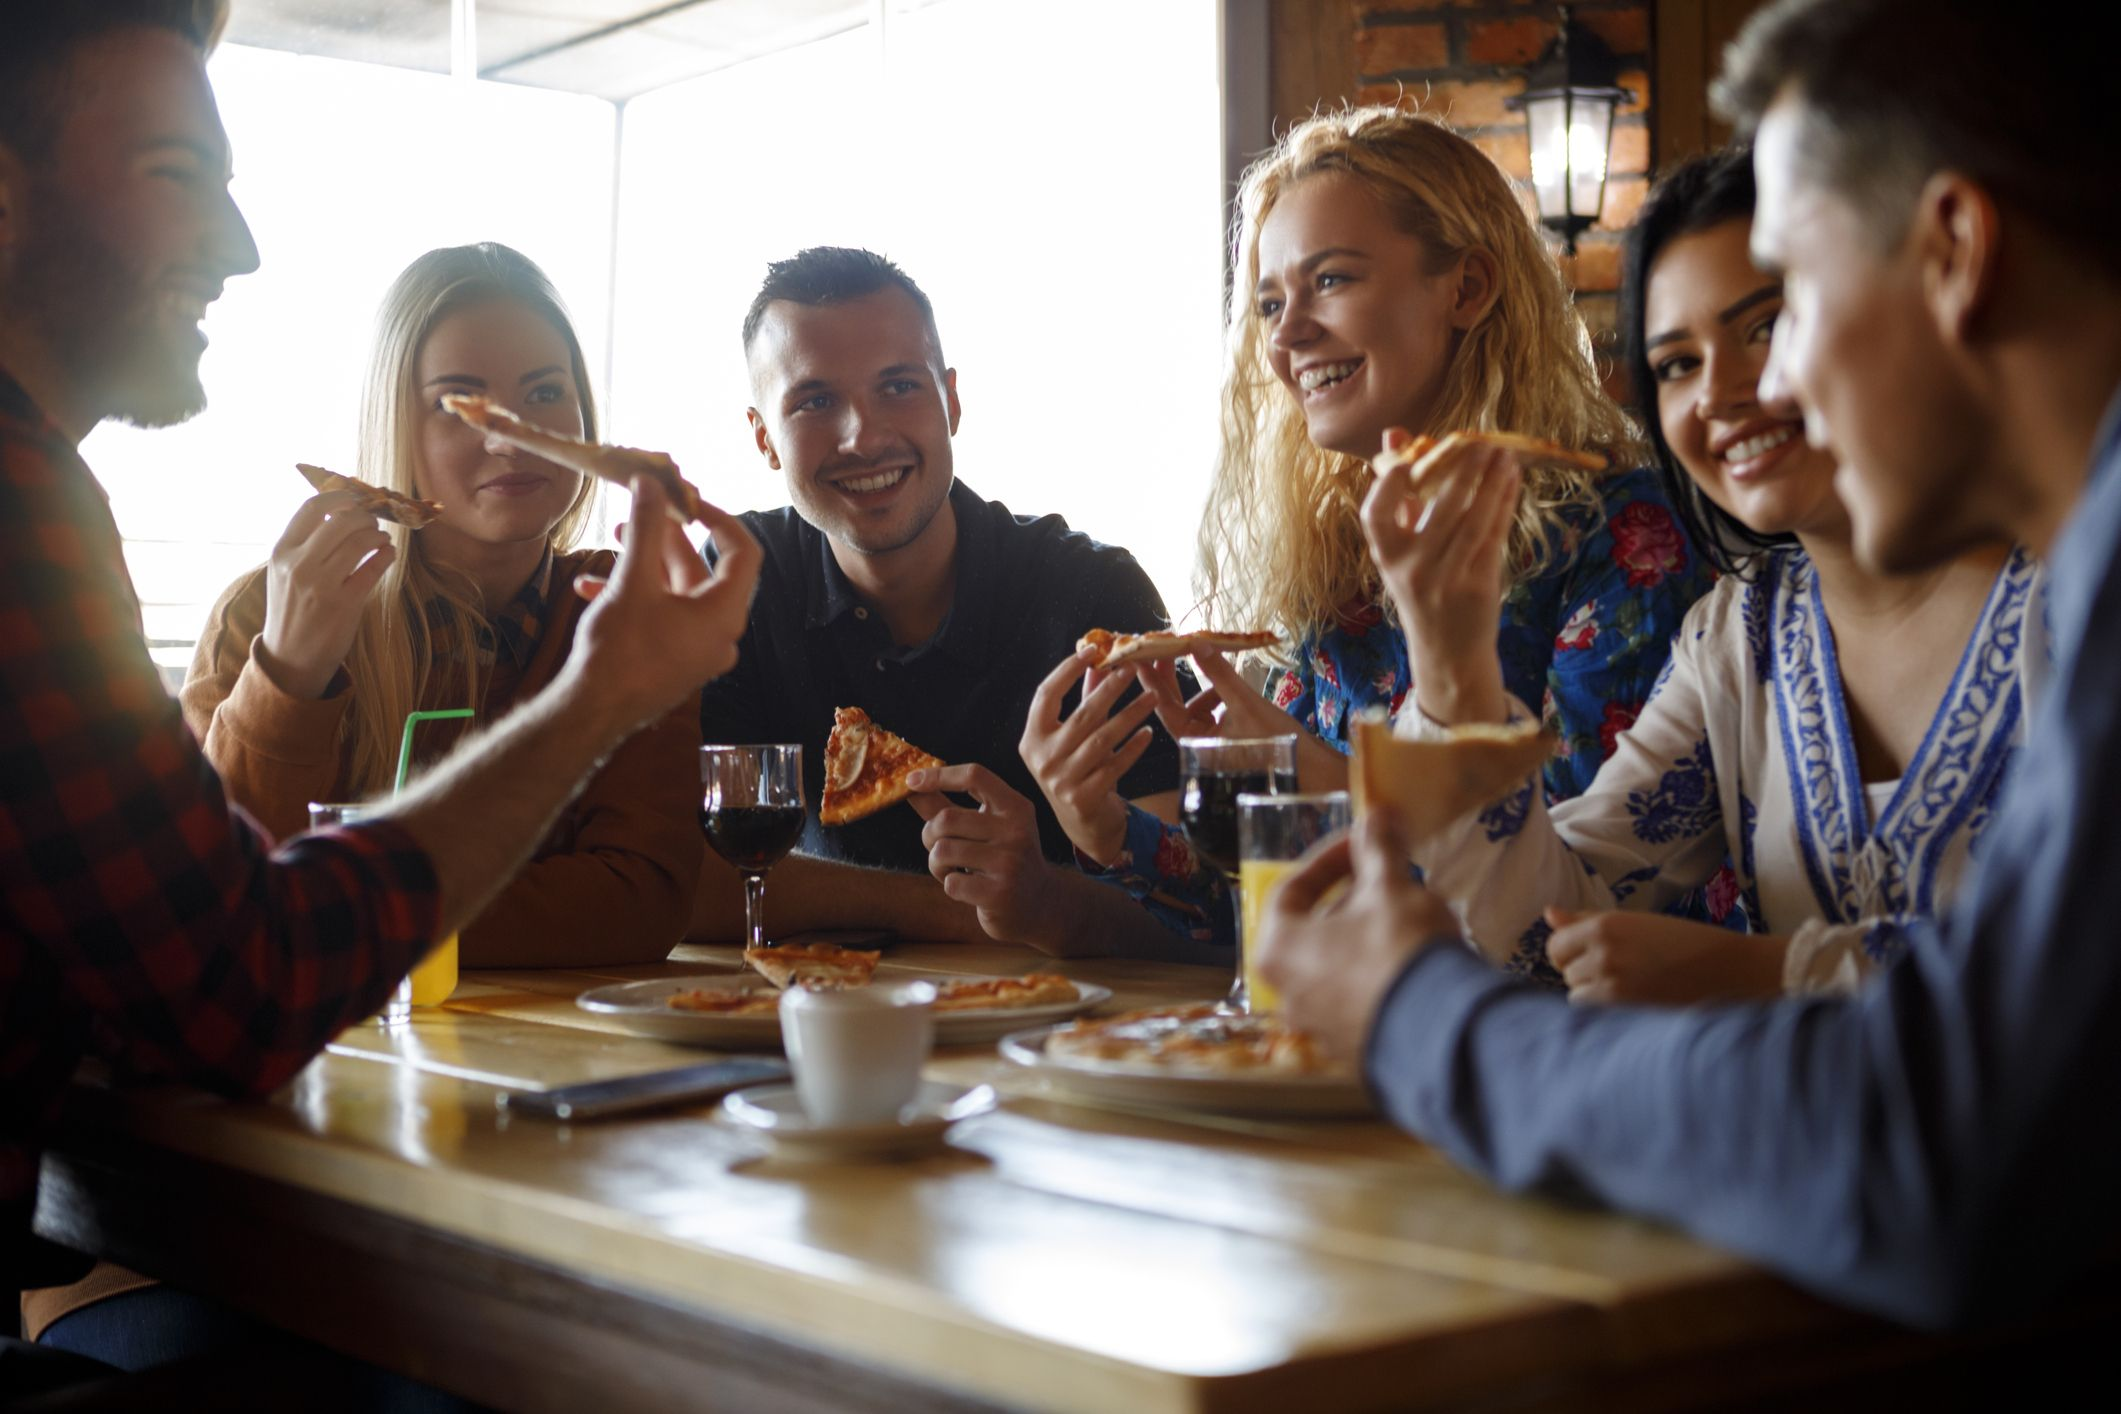 Group-of-friends-eating-pizza-at-restaurant-923438398_2125x1416-compressor